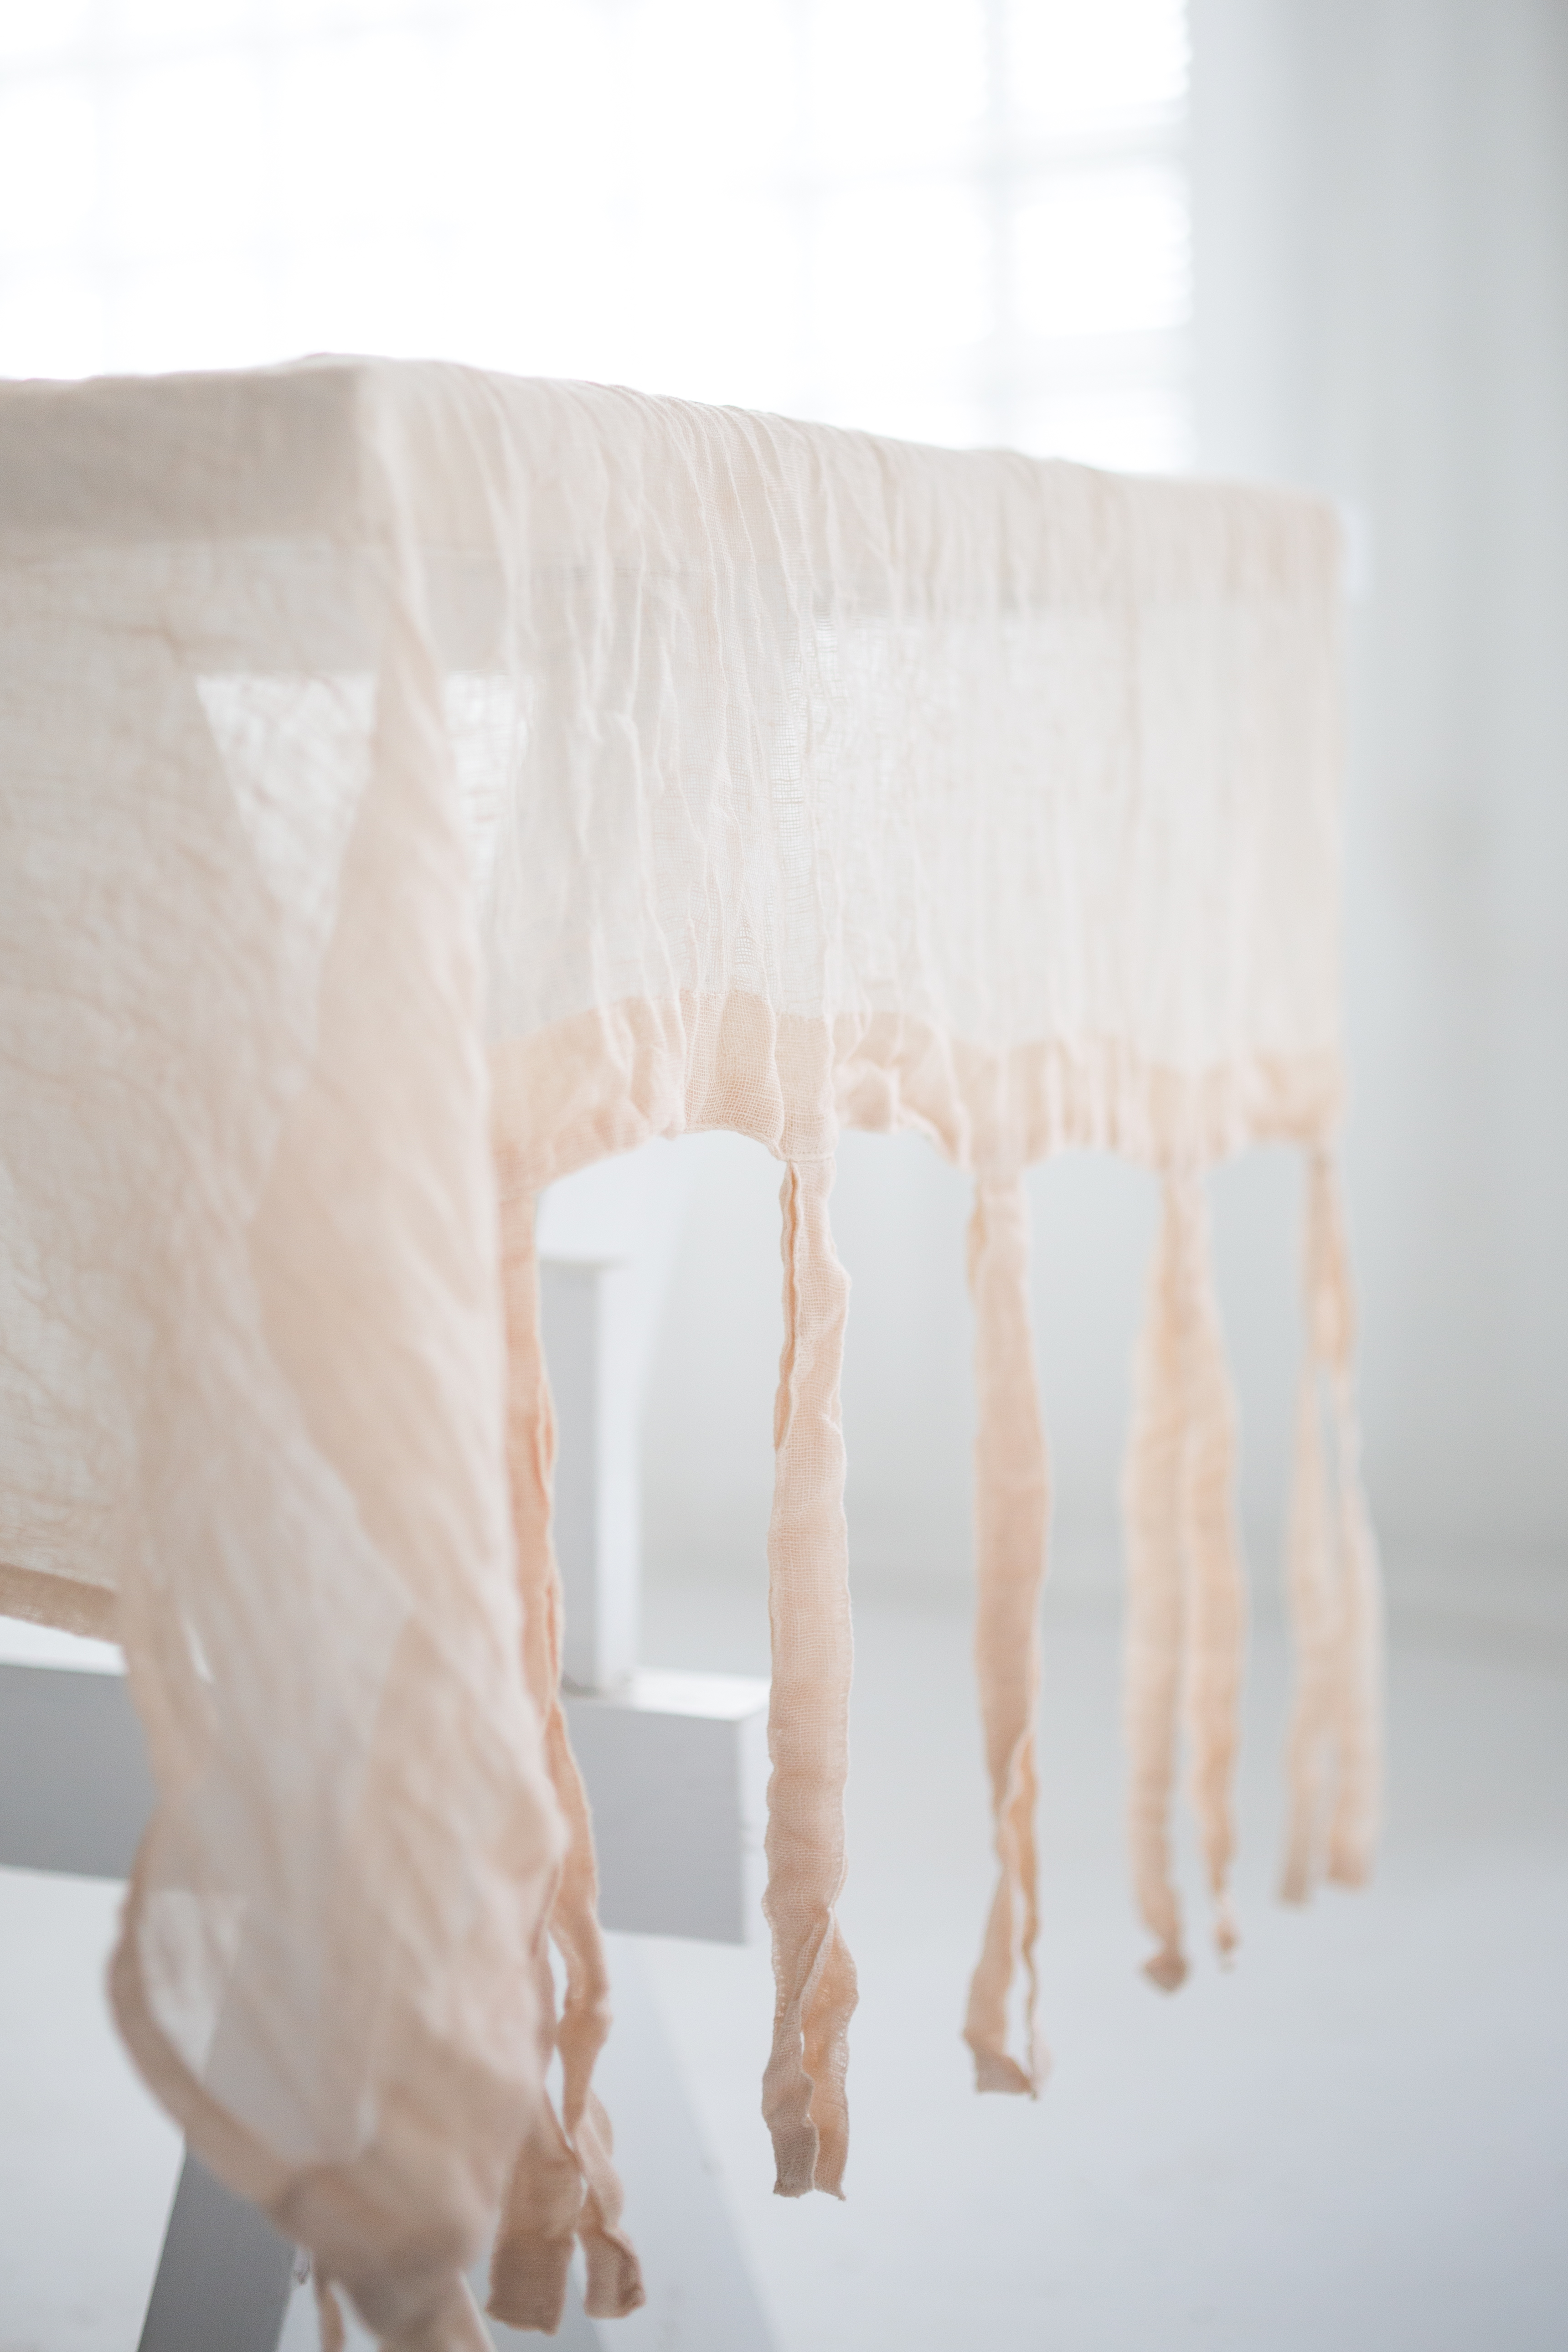 How To: Tea Stain Fabric